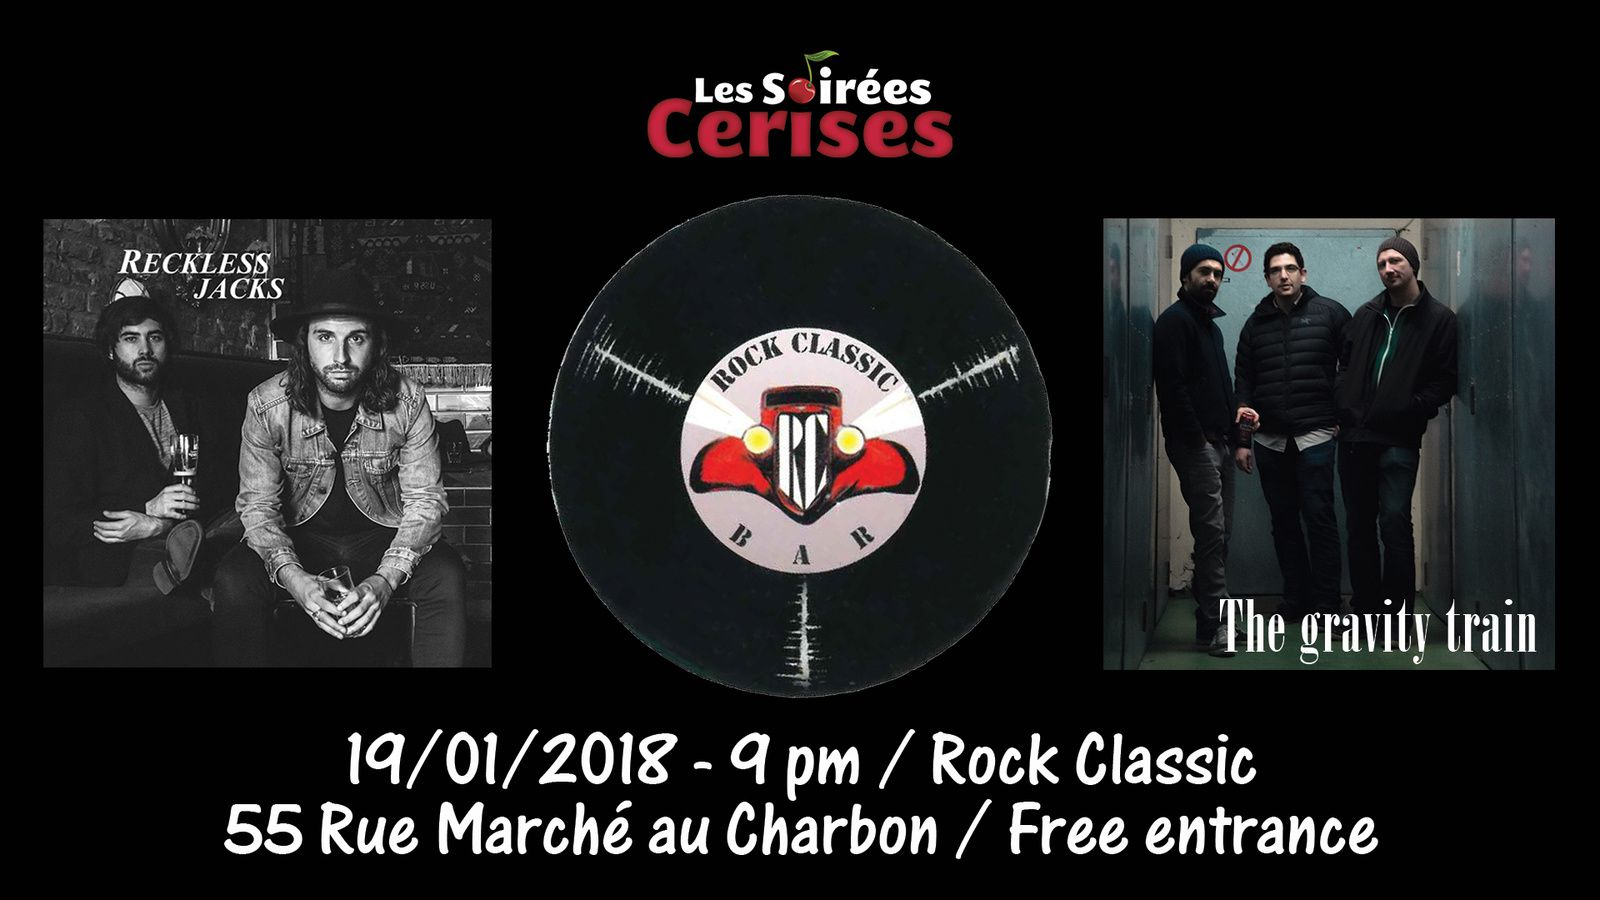 ▶ Reckless Jacks (UK) + The Gravy train @ Rock Classic - 19/01/2018 - 21h00 - Entrée gratuite !